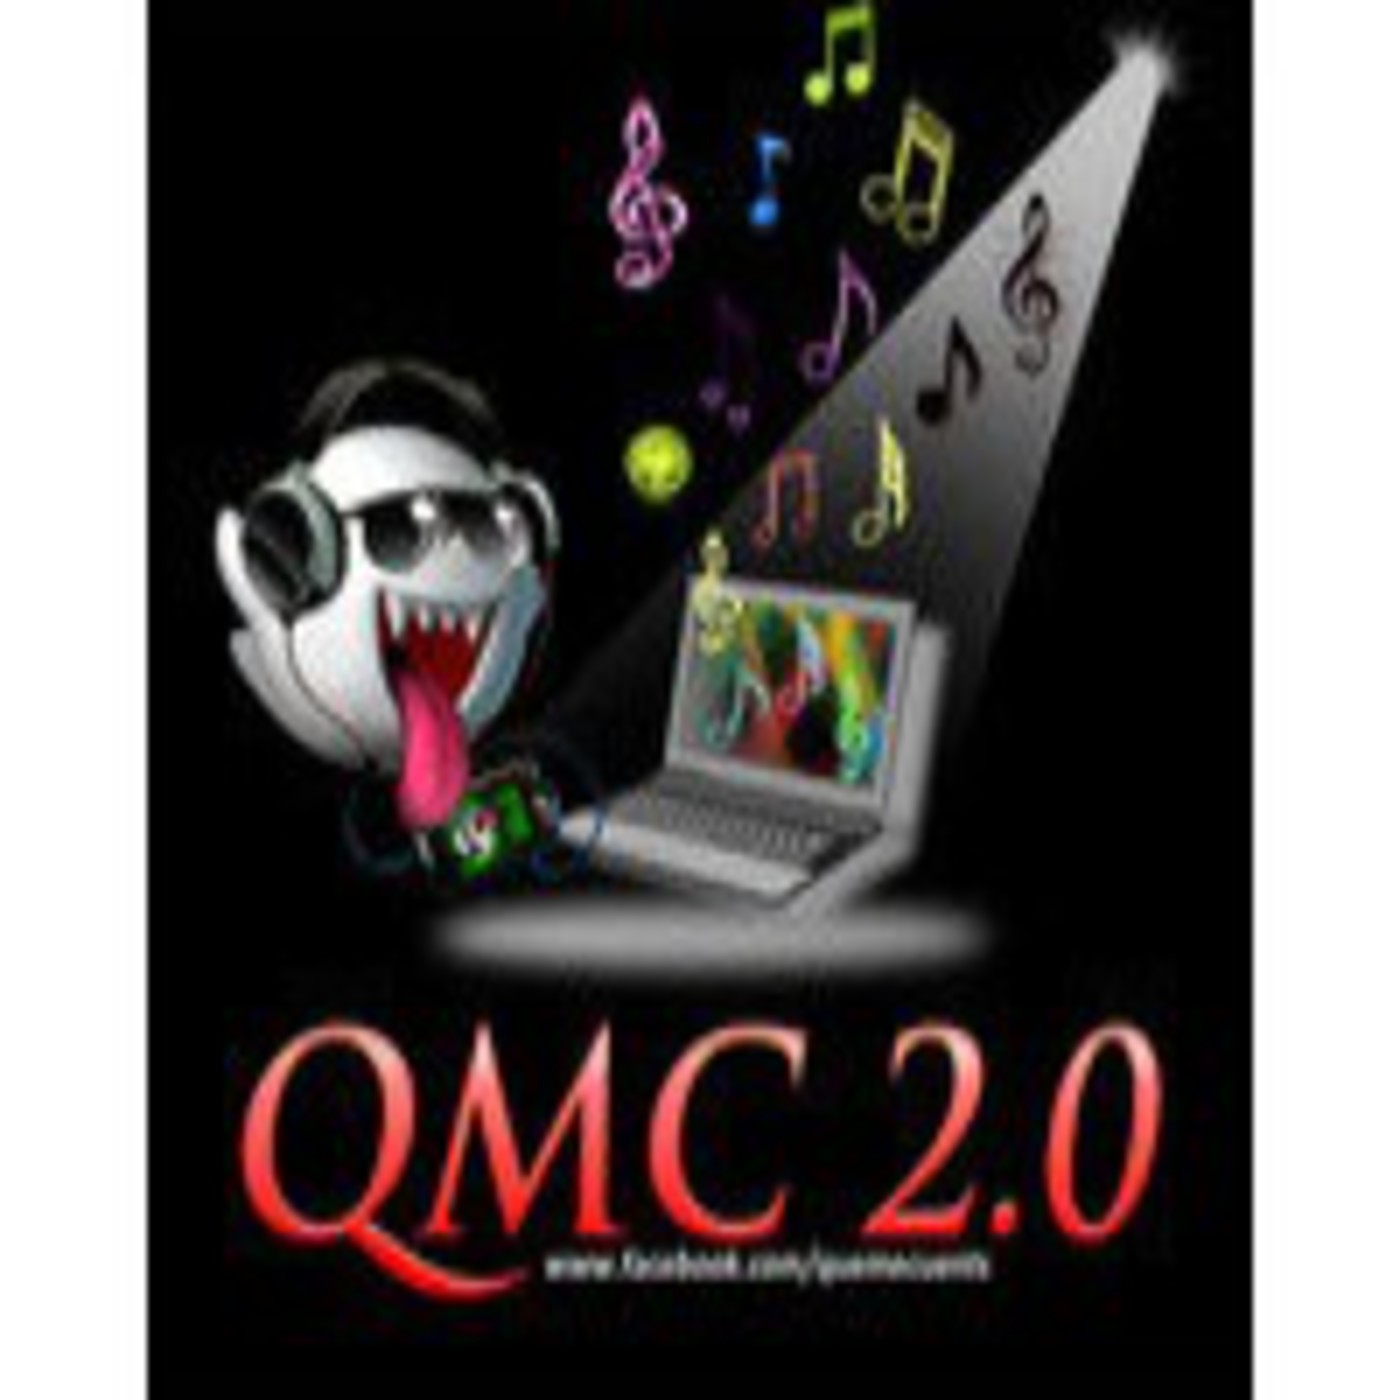 QMC 2.0-Programa 02-Radio Enlace 107,5fm-Madrid